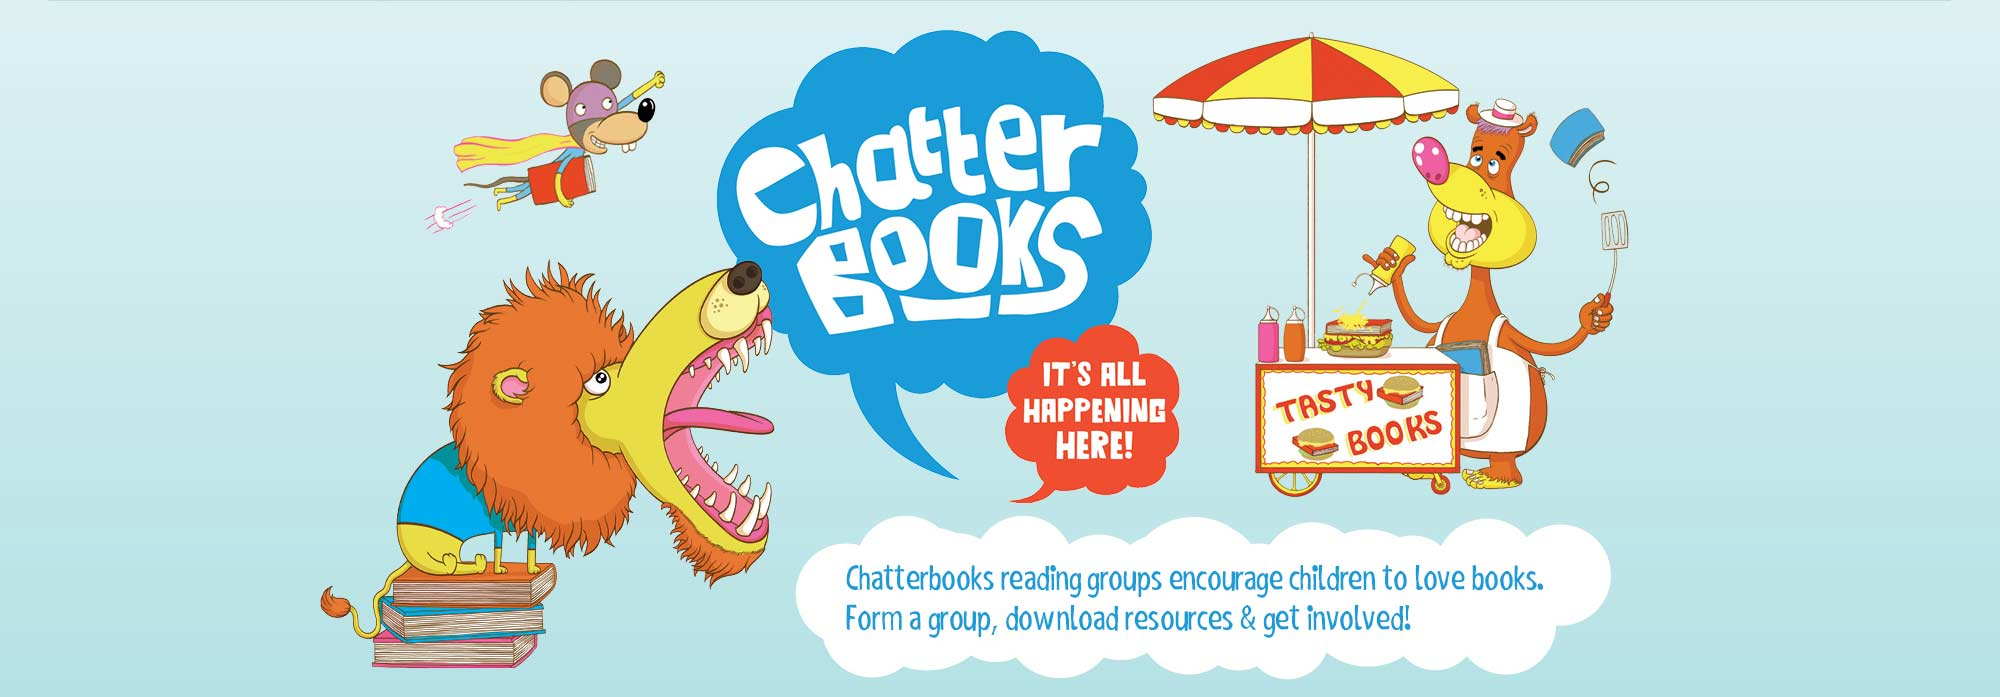 r4p-chatterbooks